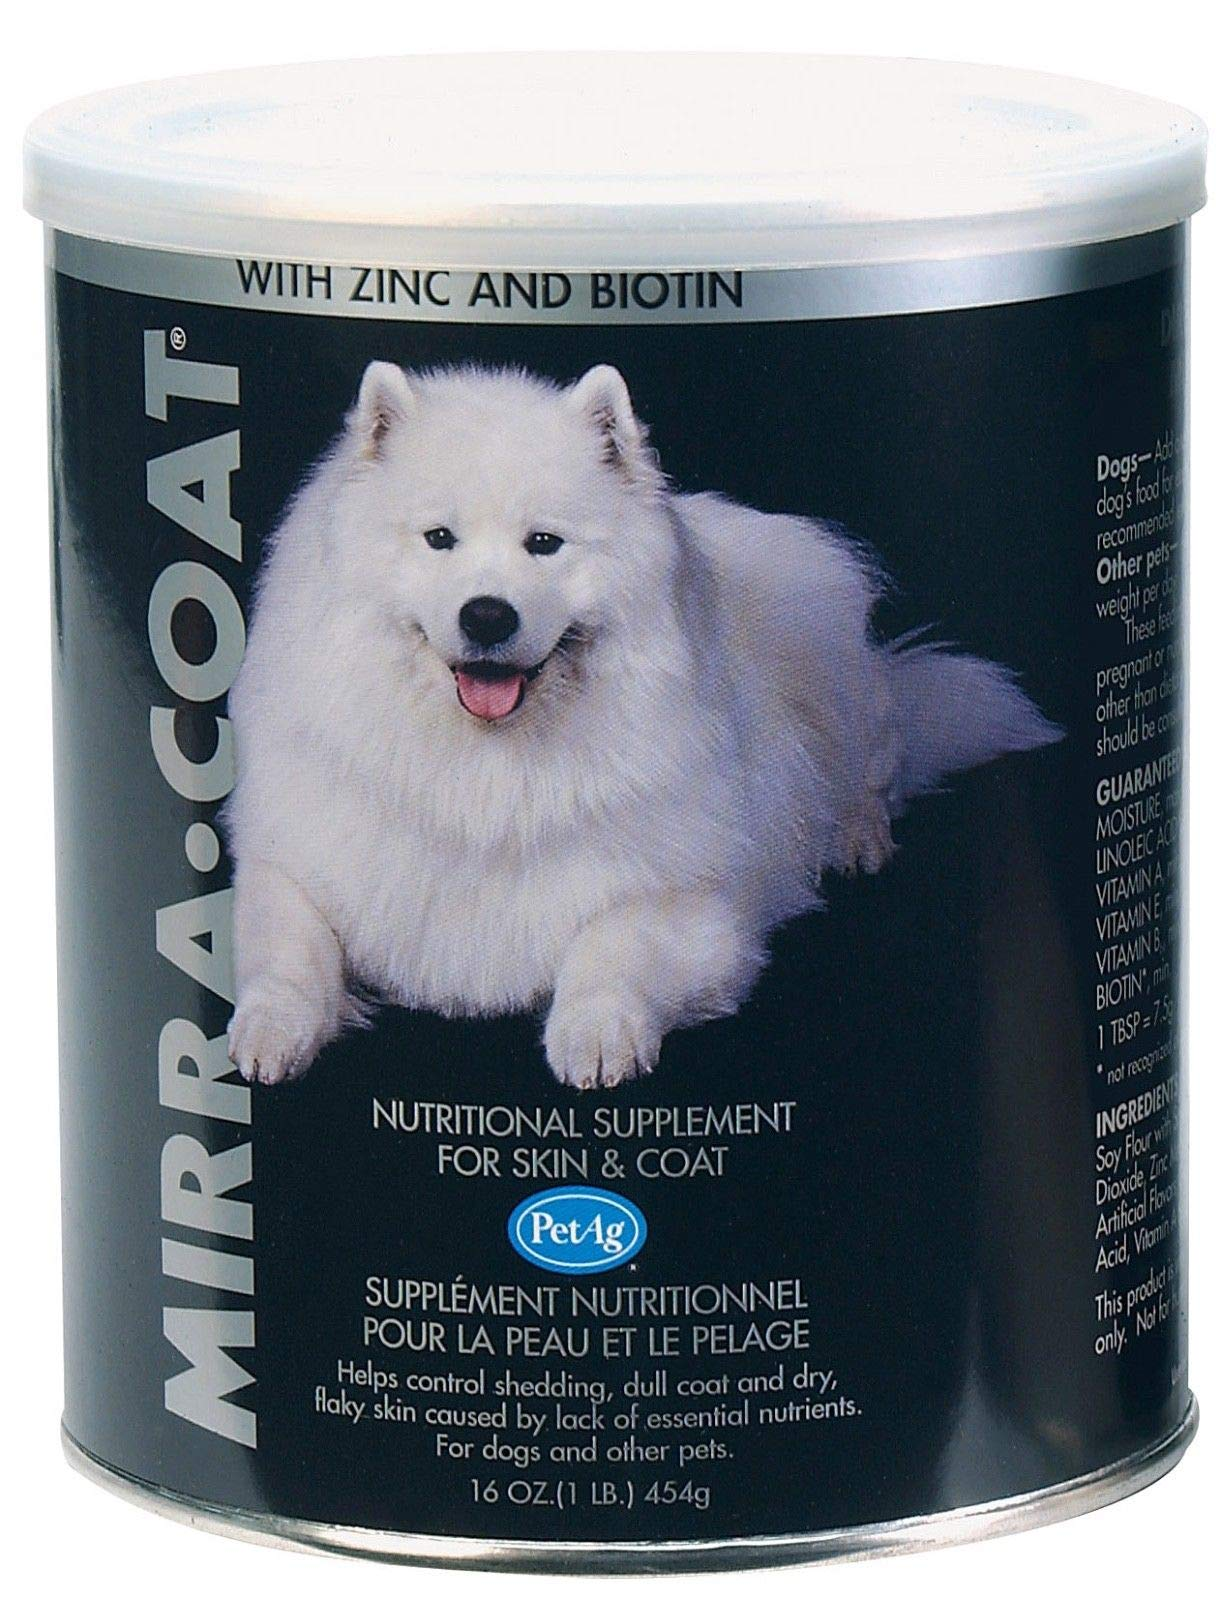 Mira-Coat nutrional Skin & Coat Conditioner Powder for Dogs & Similar Animals with Zink & biotin.Helps Control Shedding, Scratching, Dull Coat and Dry, Flaky Skin,So Easy to use! Serve with pet Food